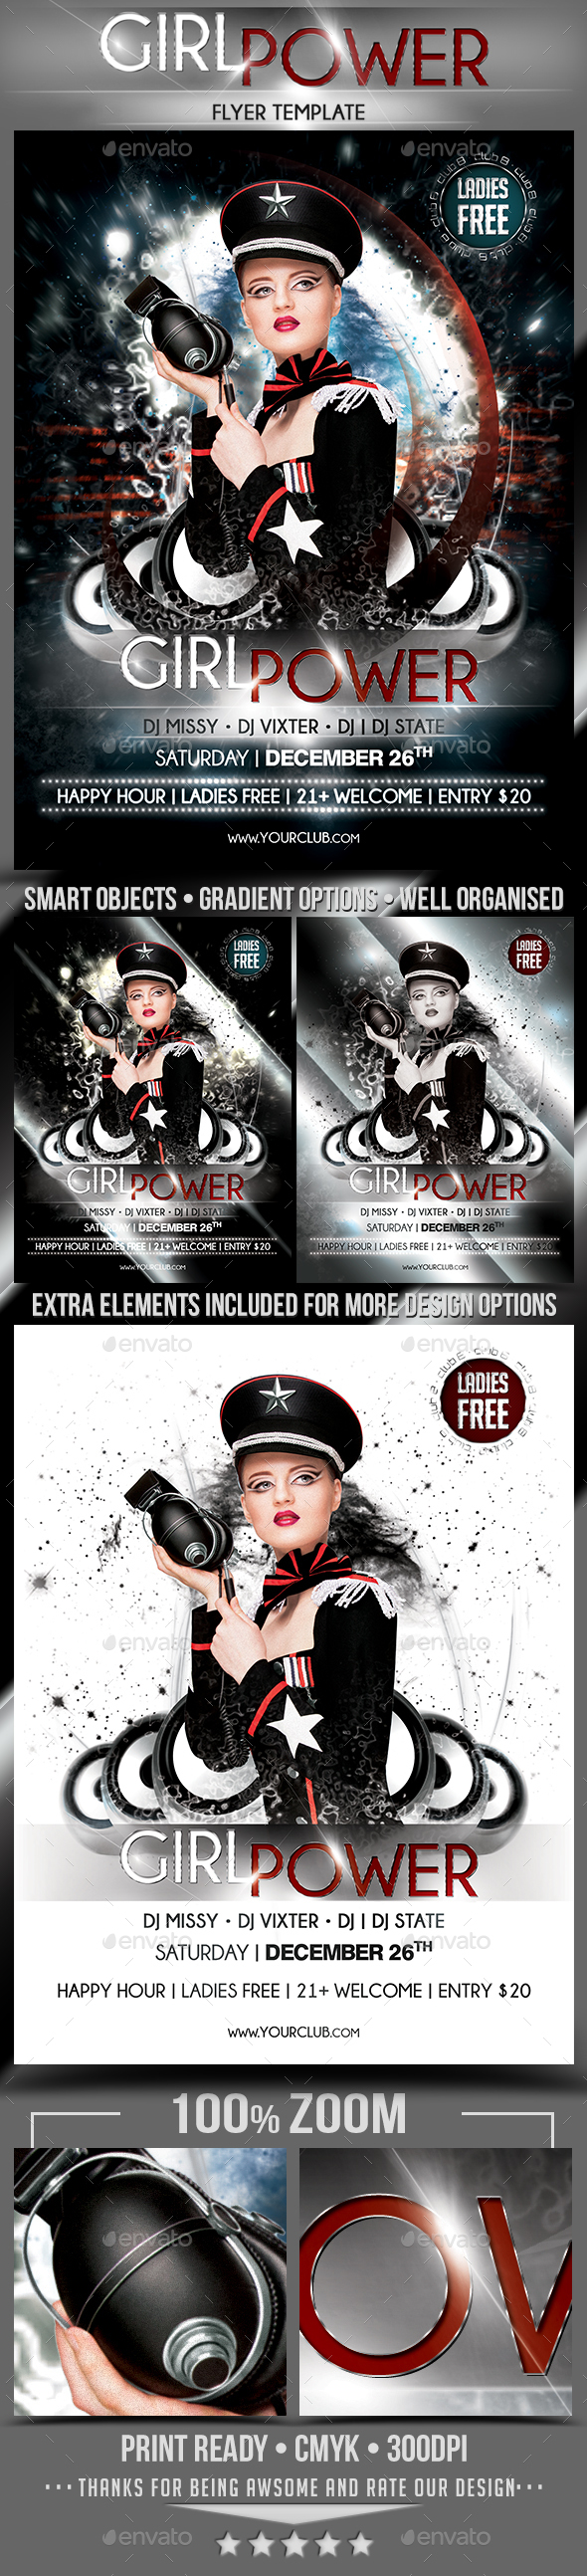 Girl Power Flyer Template - Clubs & Parties Events